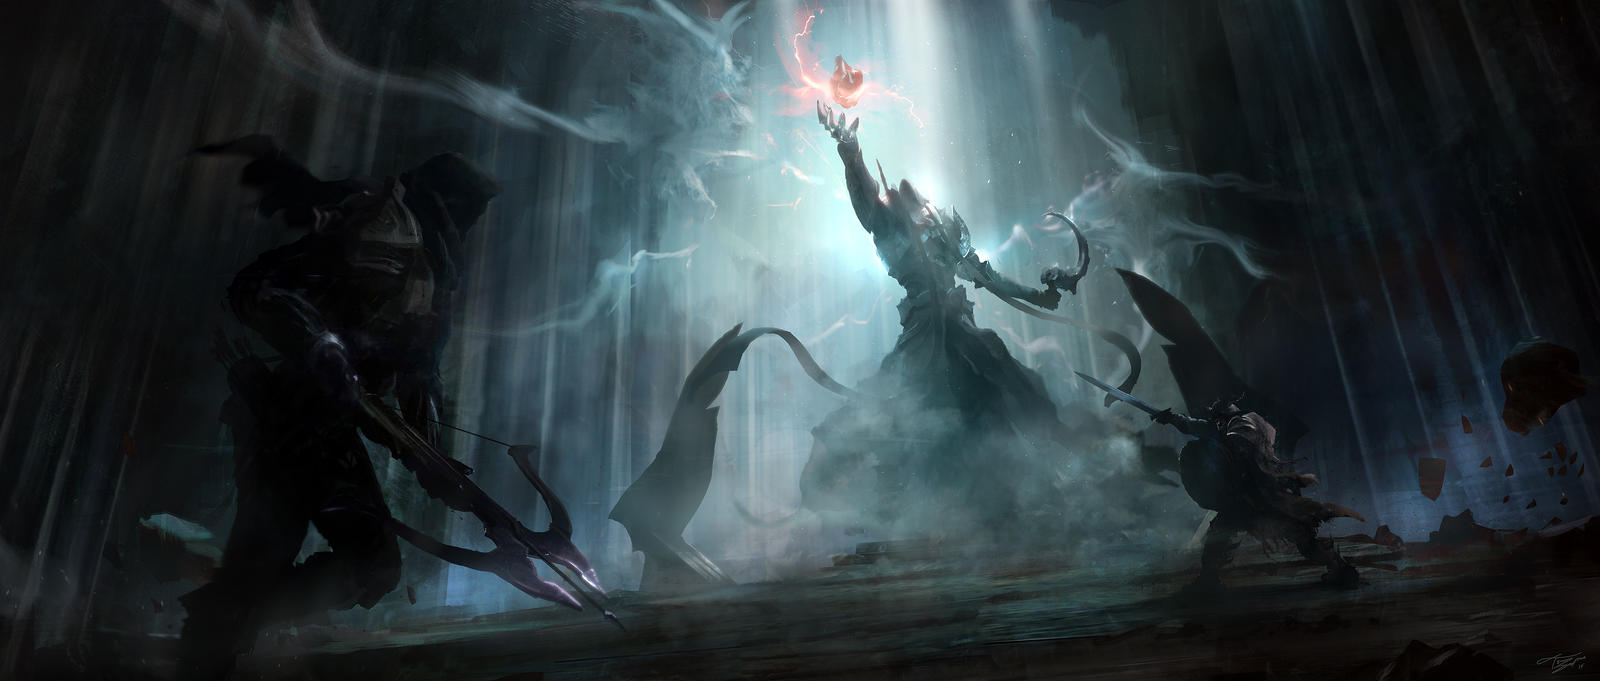 Final confrontation - Diablo 3 Reaper of Souls by tnounsy